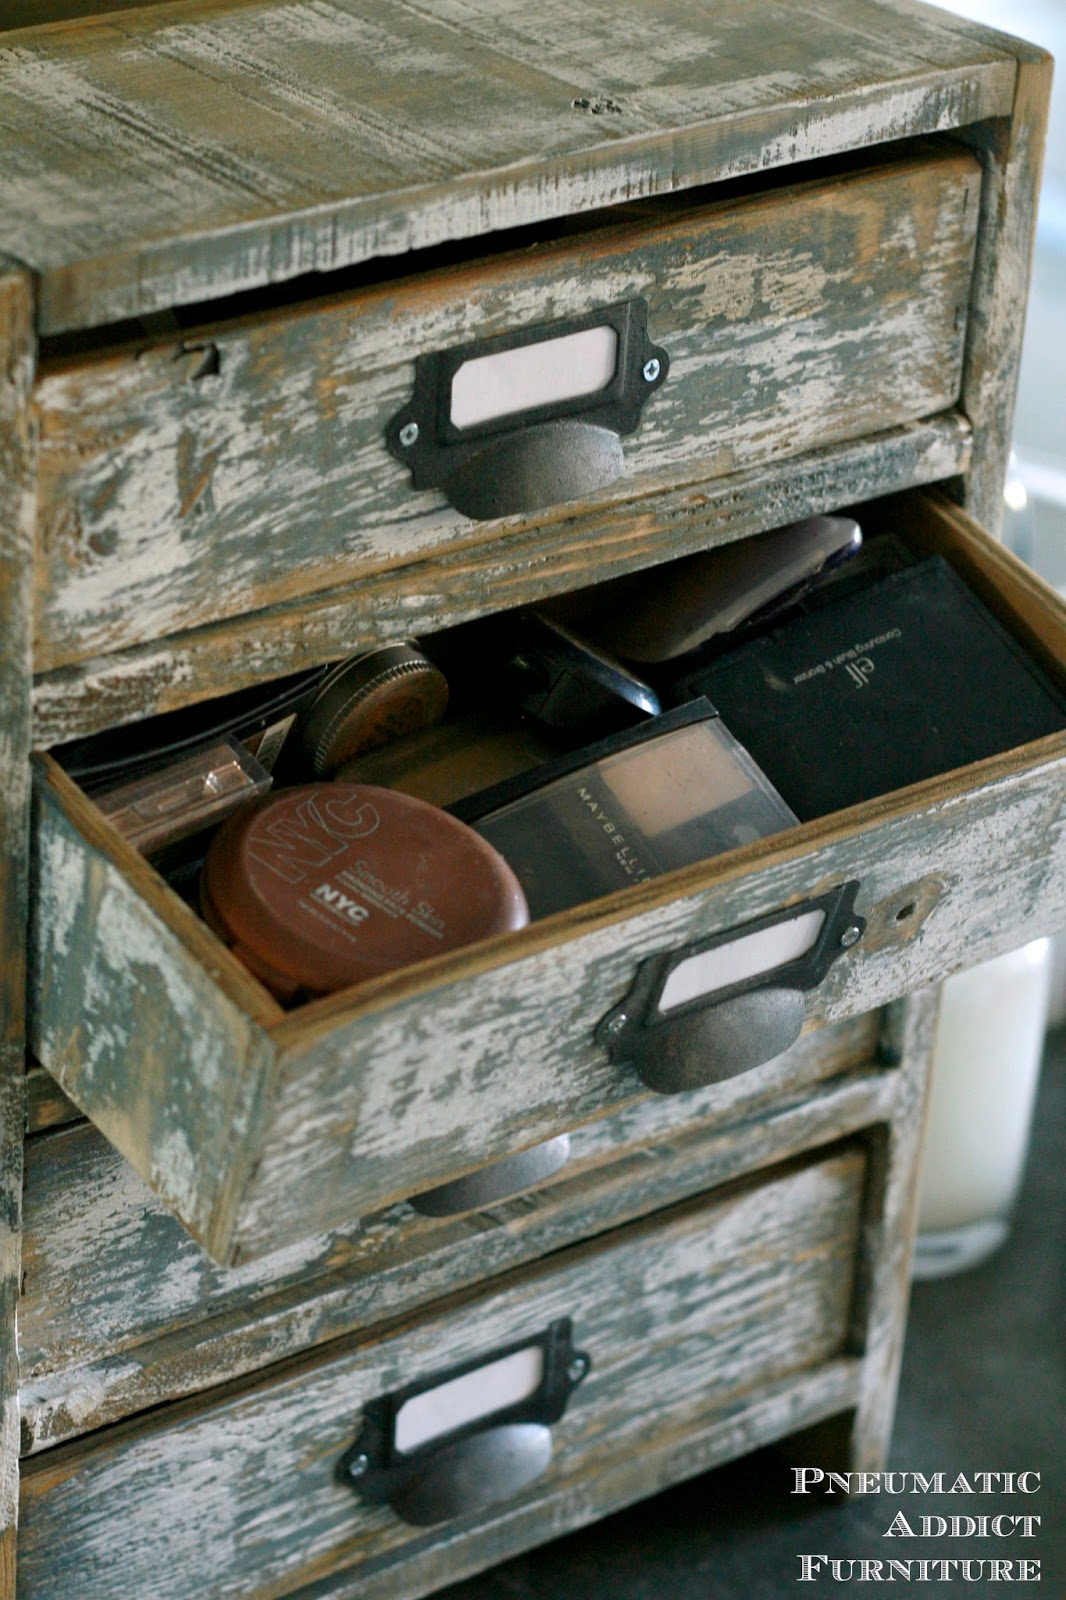 Counter-top Storage Drawer Building Plans | Pneumatic Addict